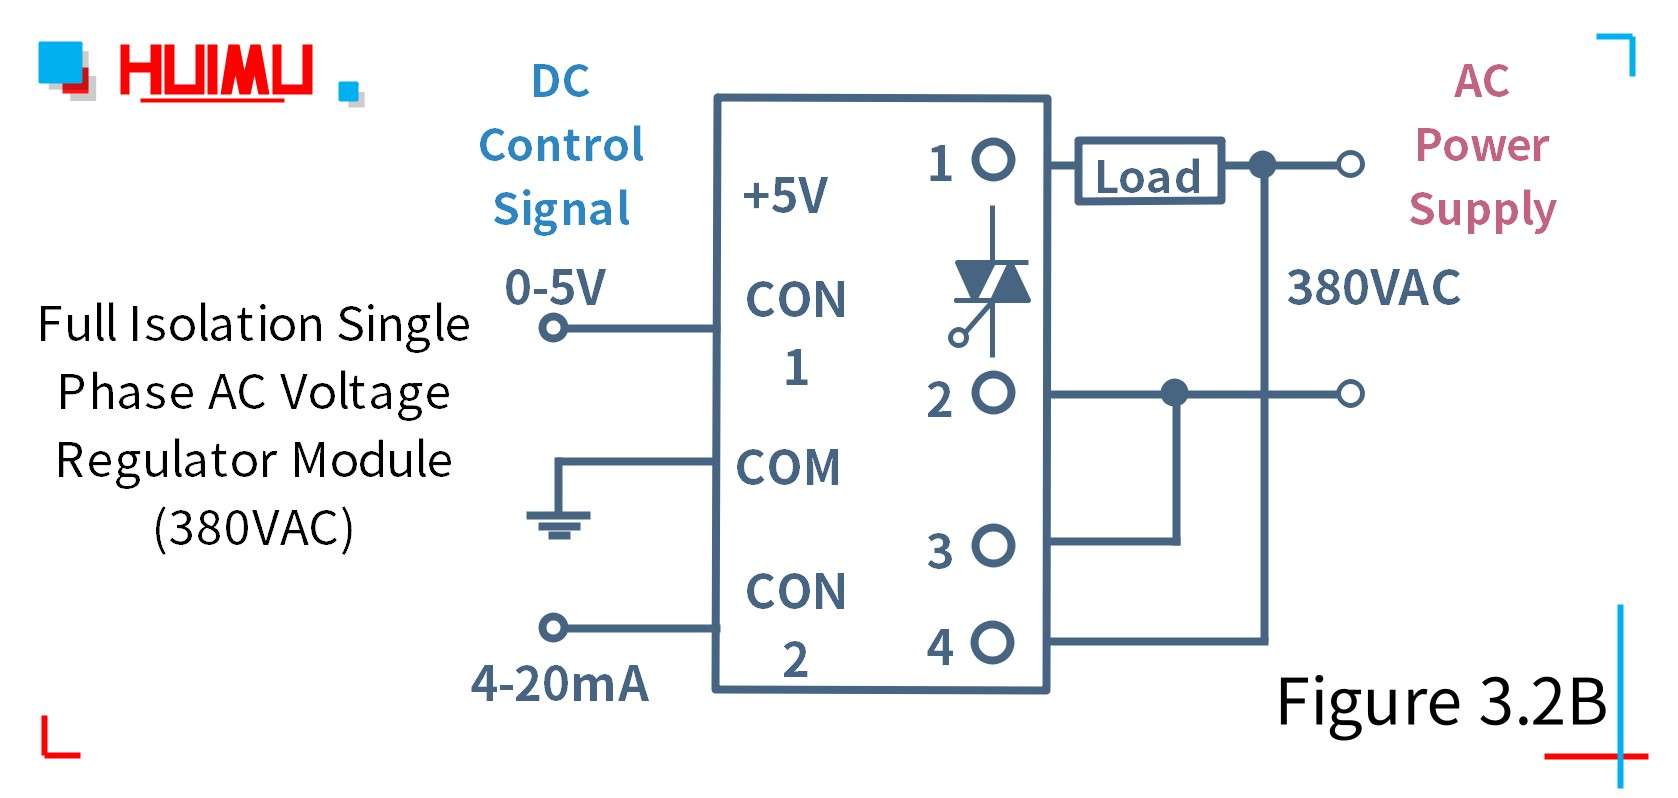 How to wire MGR mager MGR-DTY2240EG full isolation single phase AC voltage regulator? 380VAC type AC voltage regulator module circuit diagram, rated working voltage is 380VAC. More detail via www.@huimultd.com